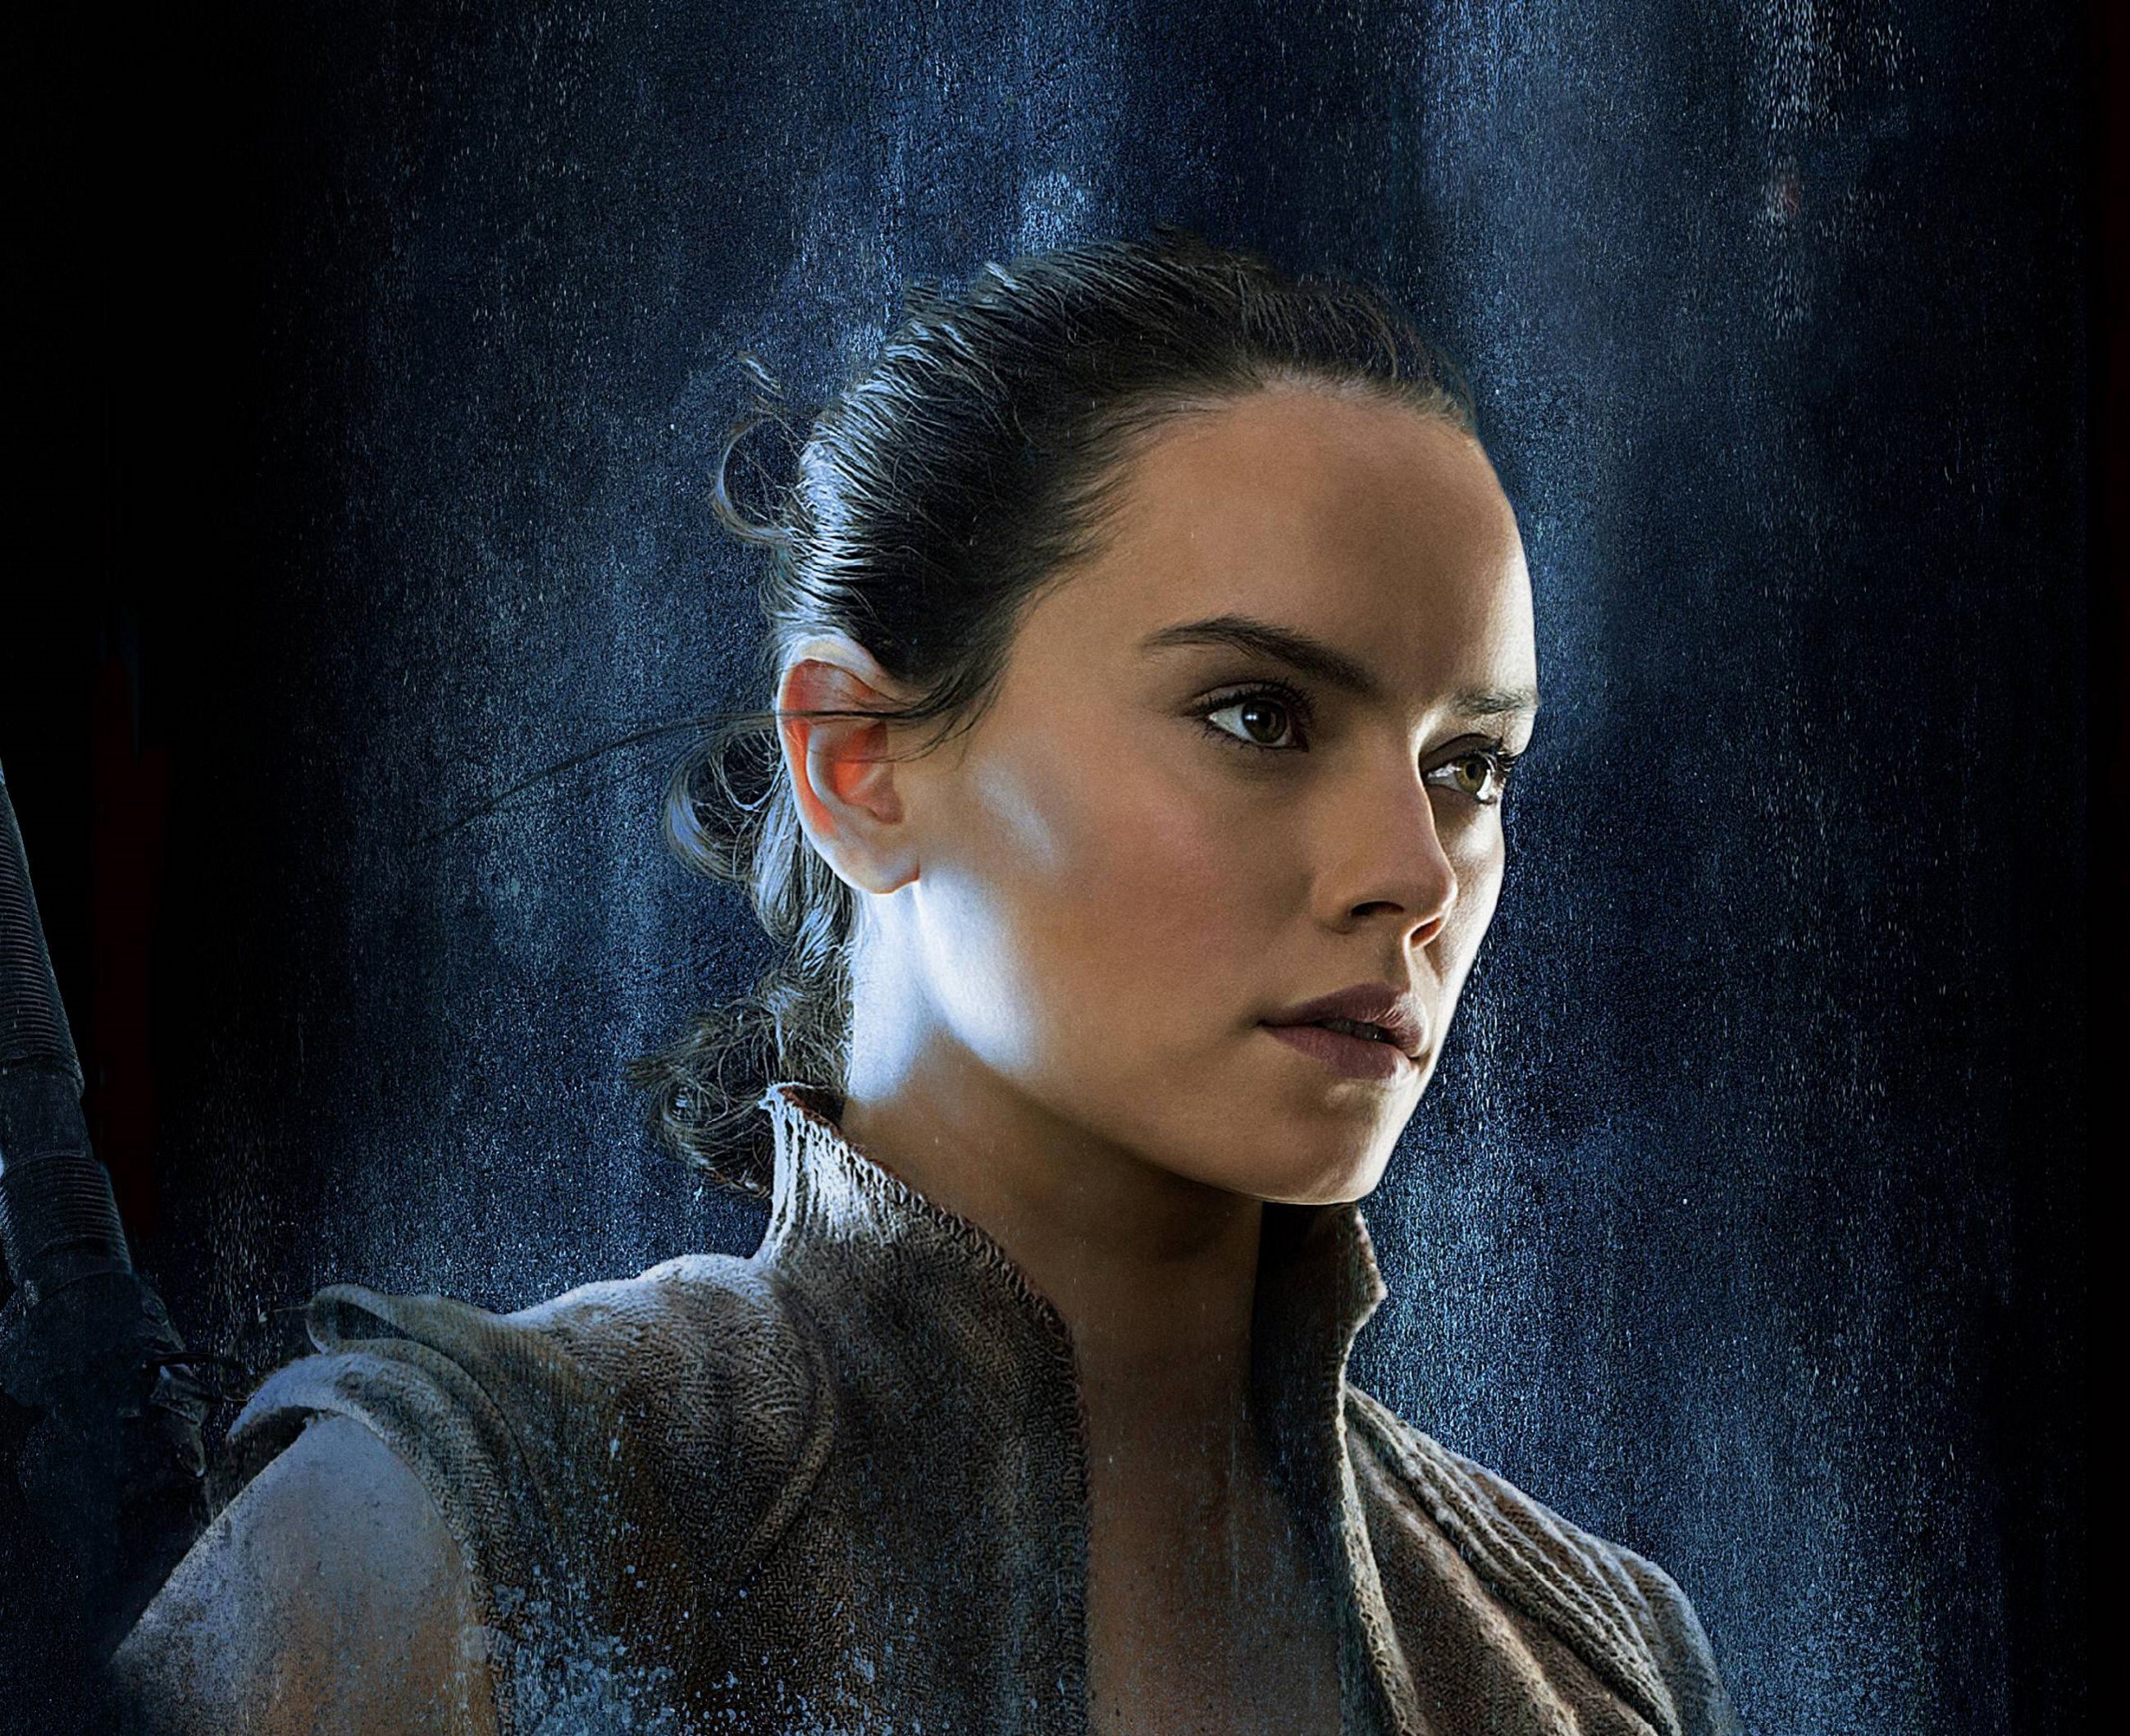 Rey Desktop Wallpaper Posted By Michelle Peltier